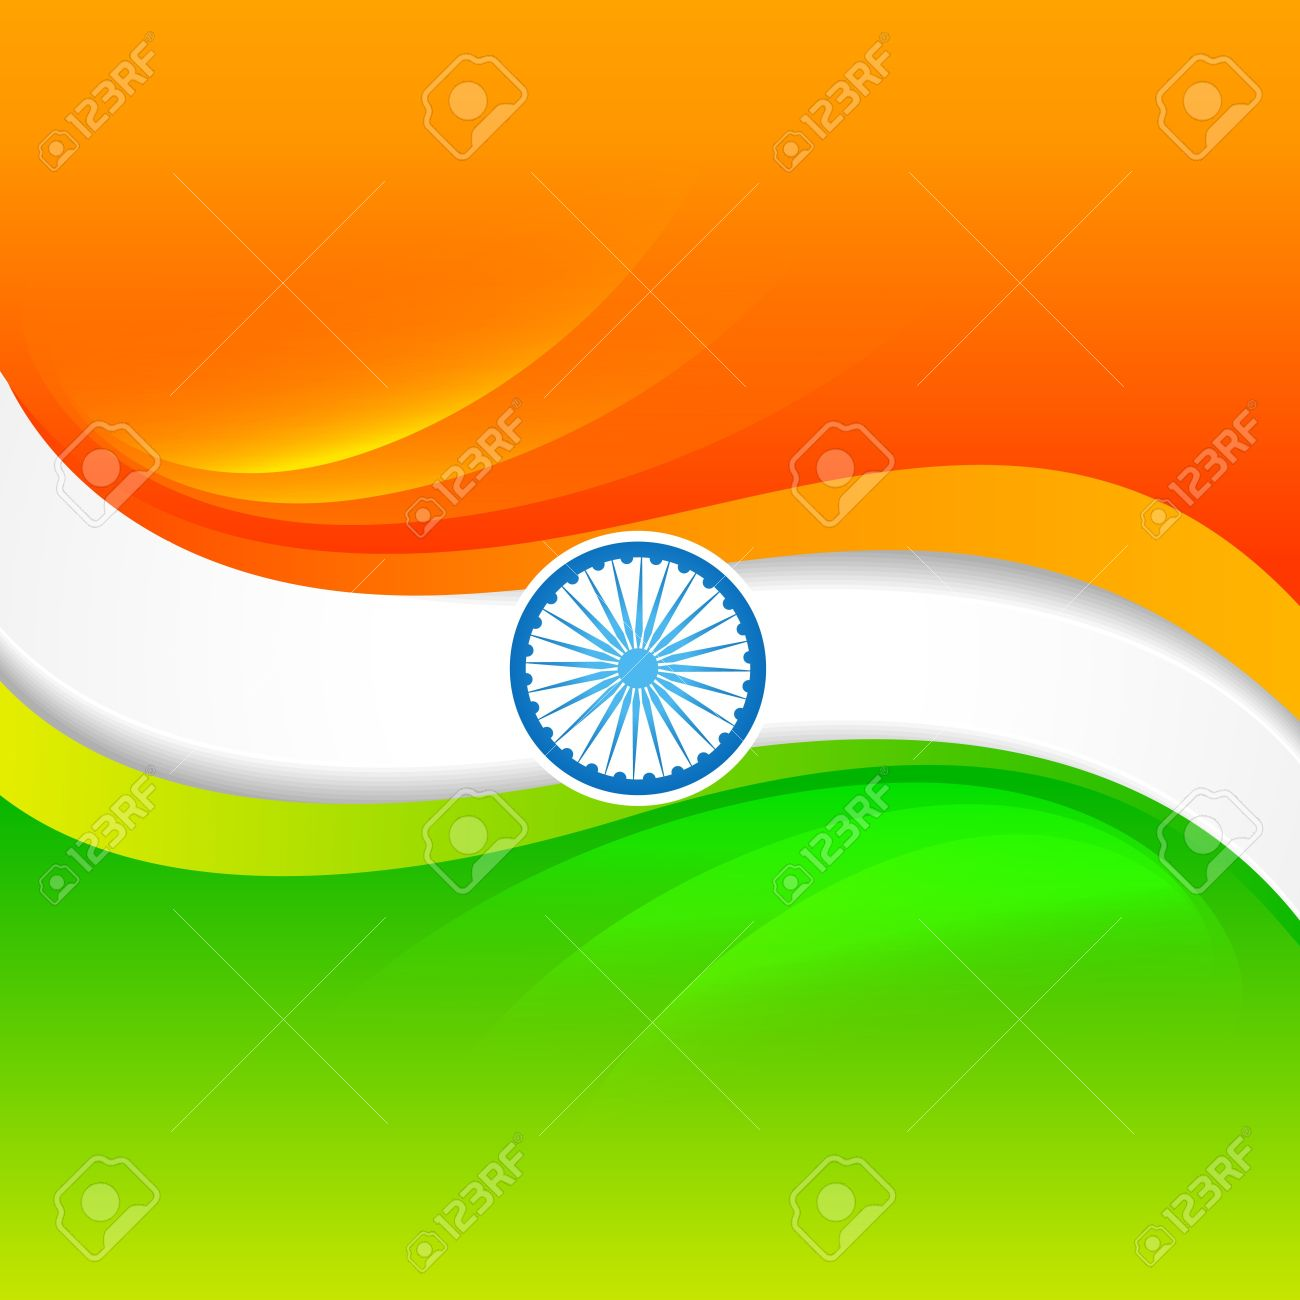 vector indian flag design in wave style Stock Vector - 17234080